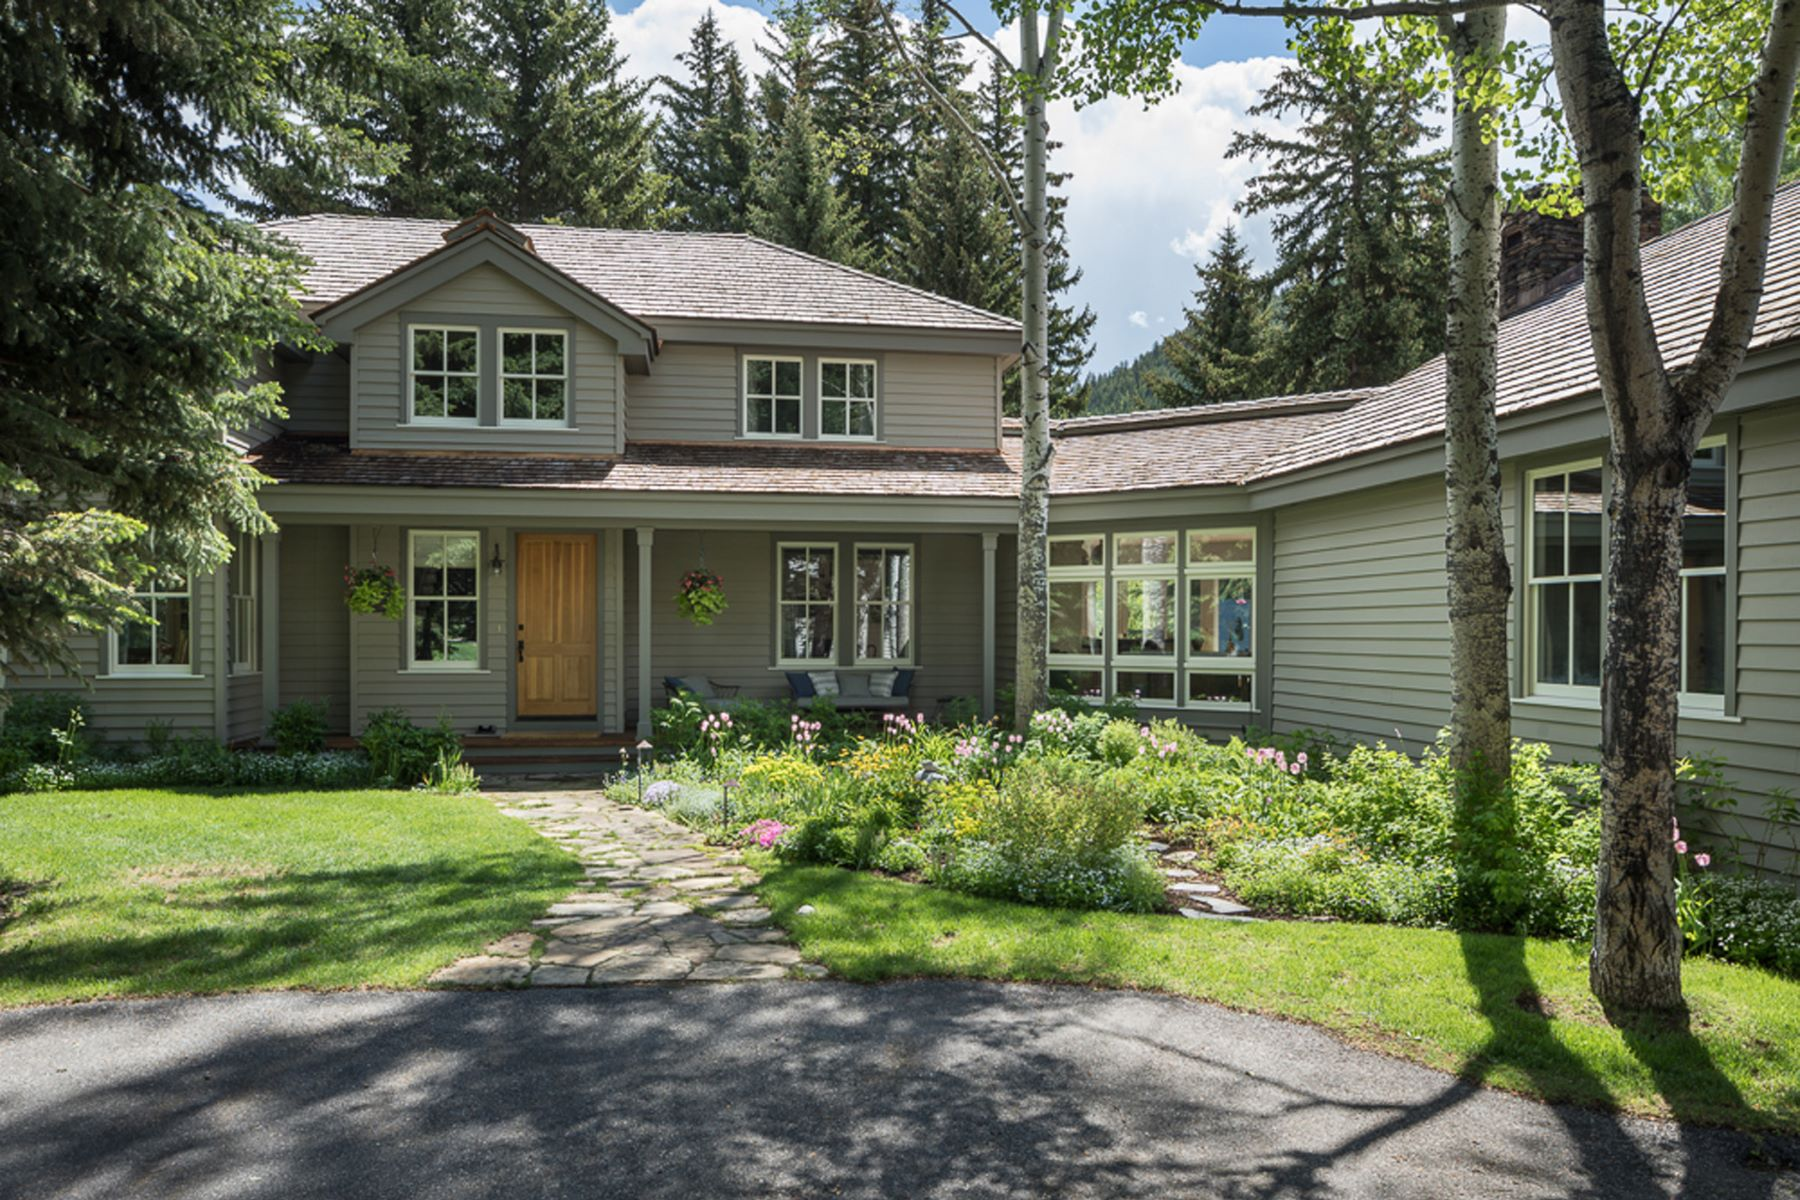 Single Family Home for Sale at A World Unto Itself 2440 Stonecrop Rd. Wilson, Wyoming, 83014 Jackson Hole, United States